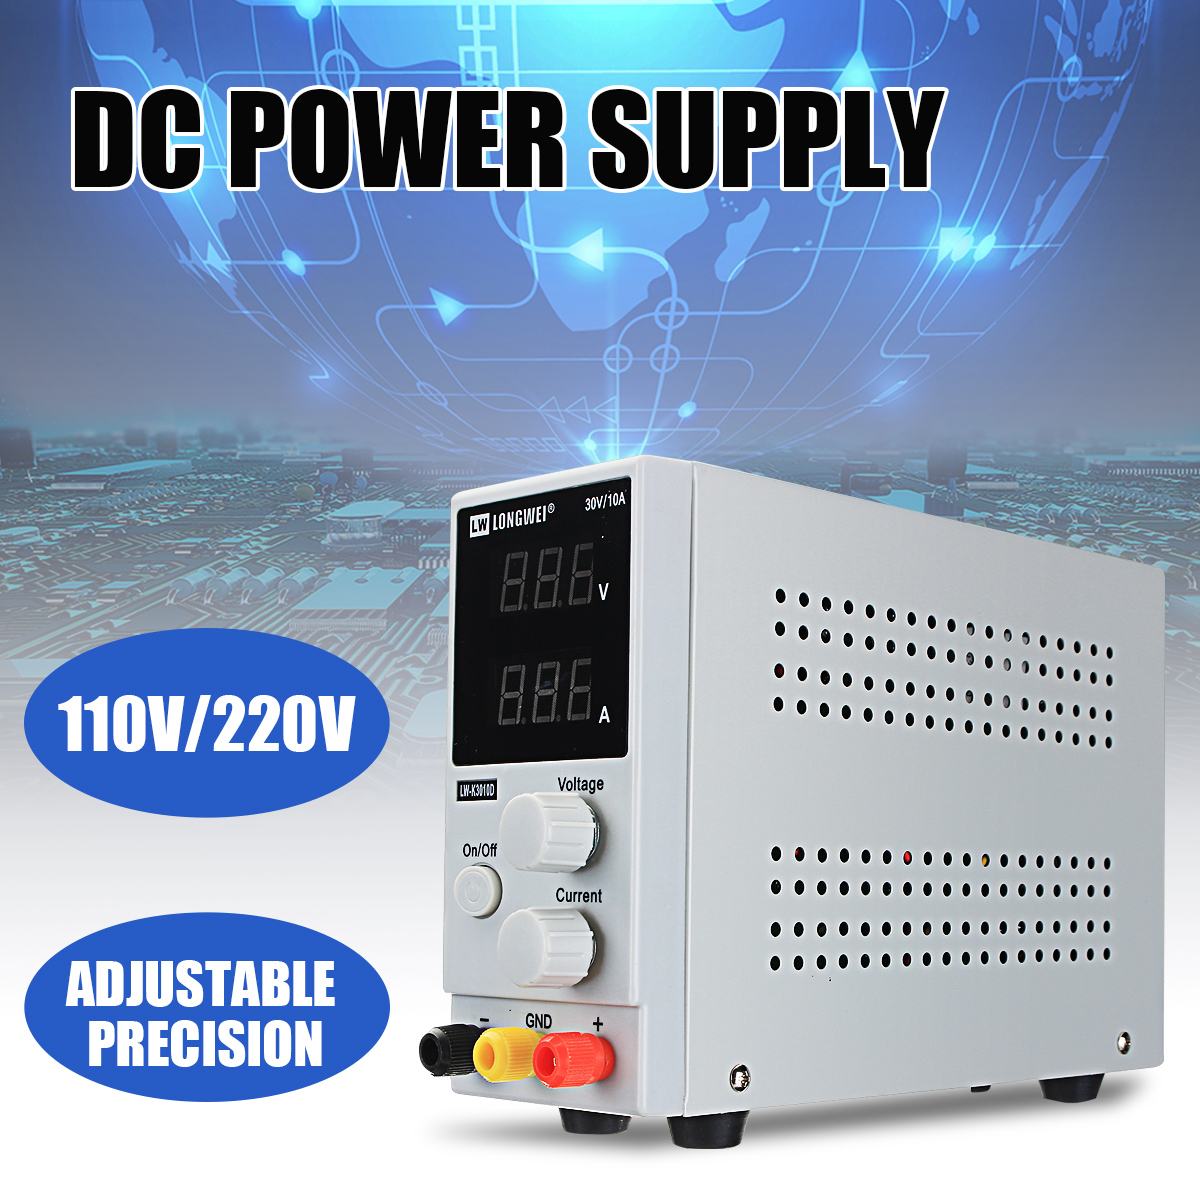 220V 0-30V 0-10A LCD DC Power Supply Voltage Regulator Variable Adjustable Switching Regulated Power Supply Digital Laboratory cps 3010ii 0 30v 0 10a low power digital adjustable dc power supply cps3010 switching power supply